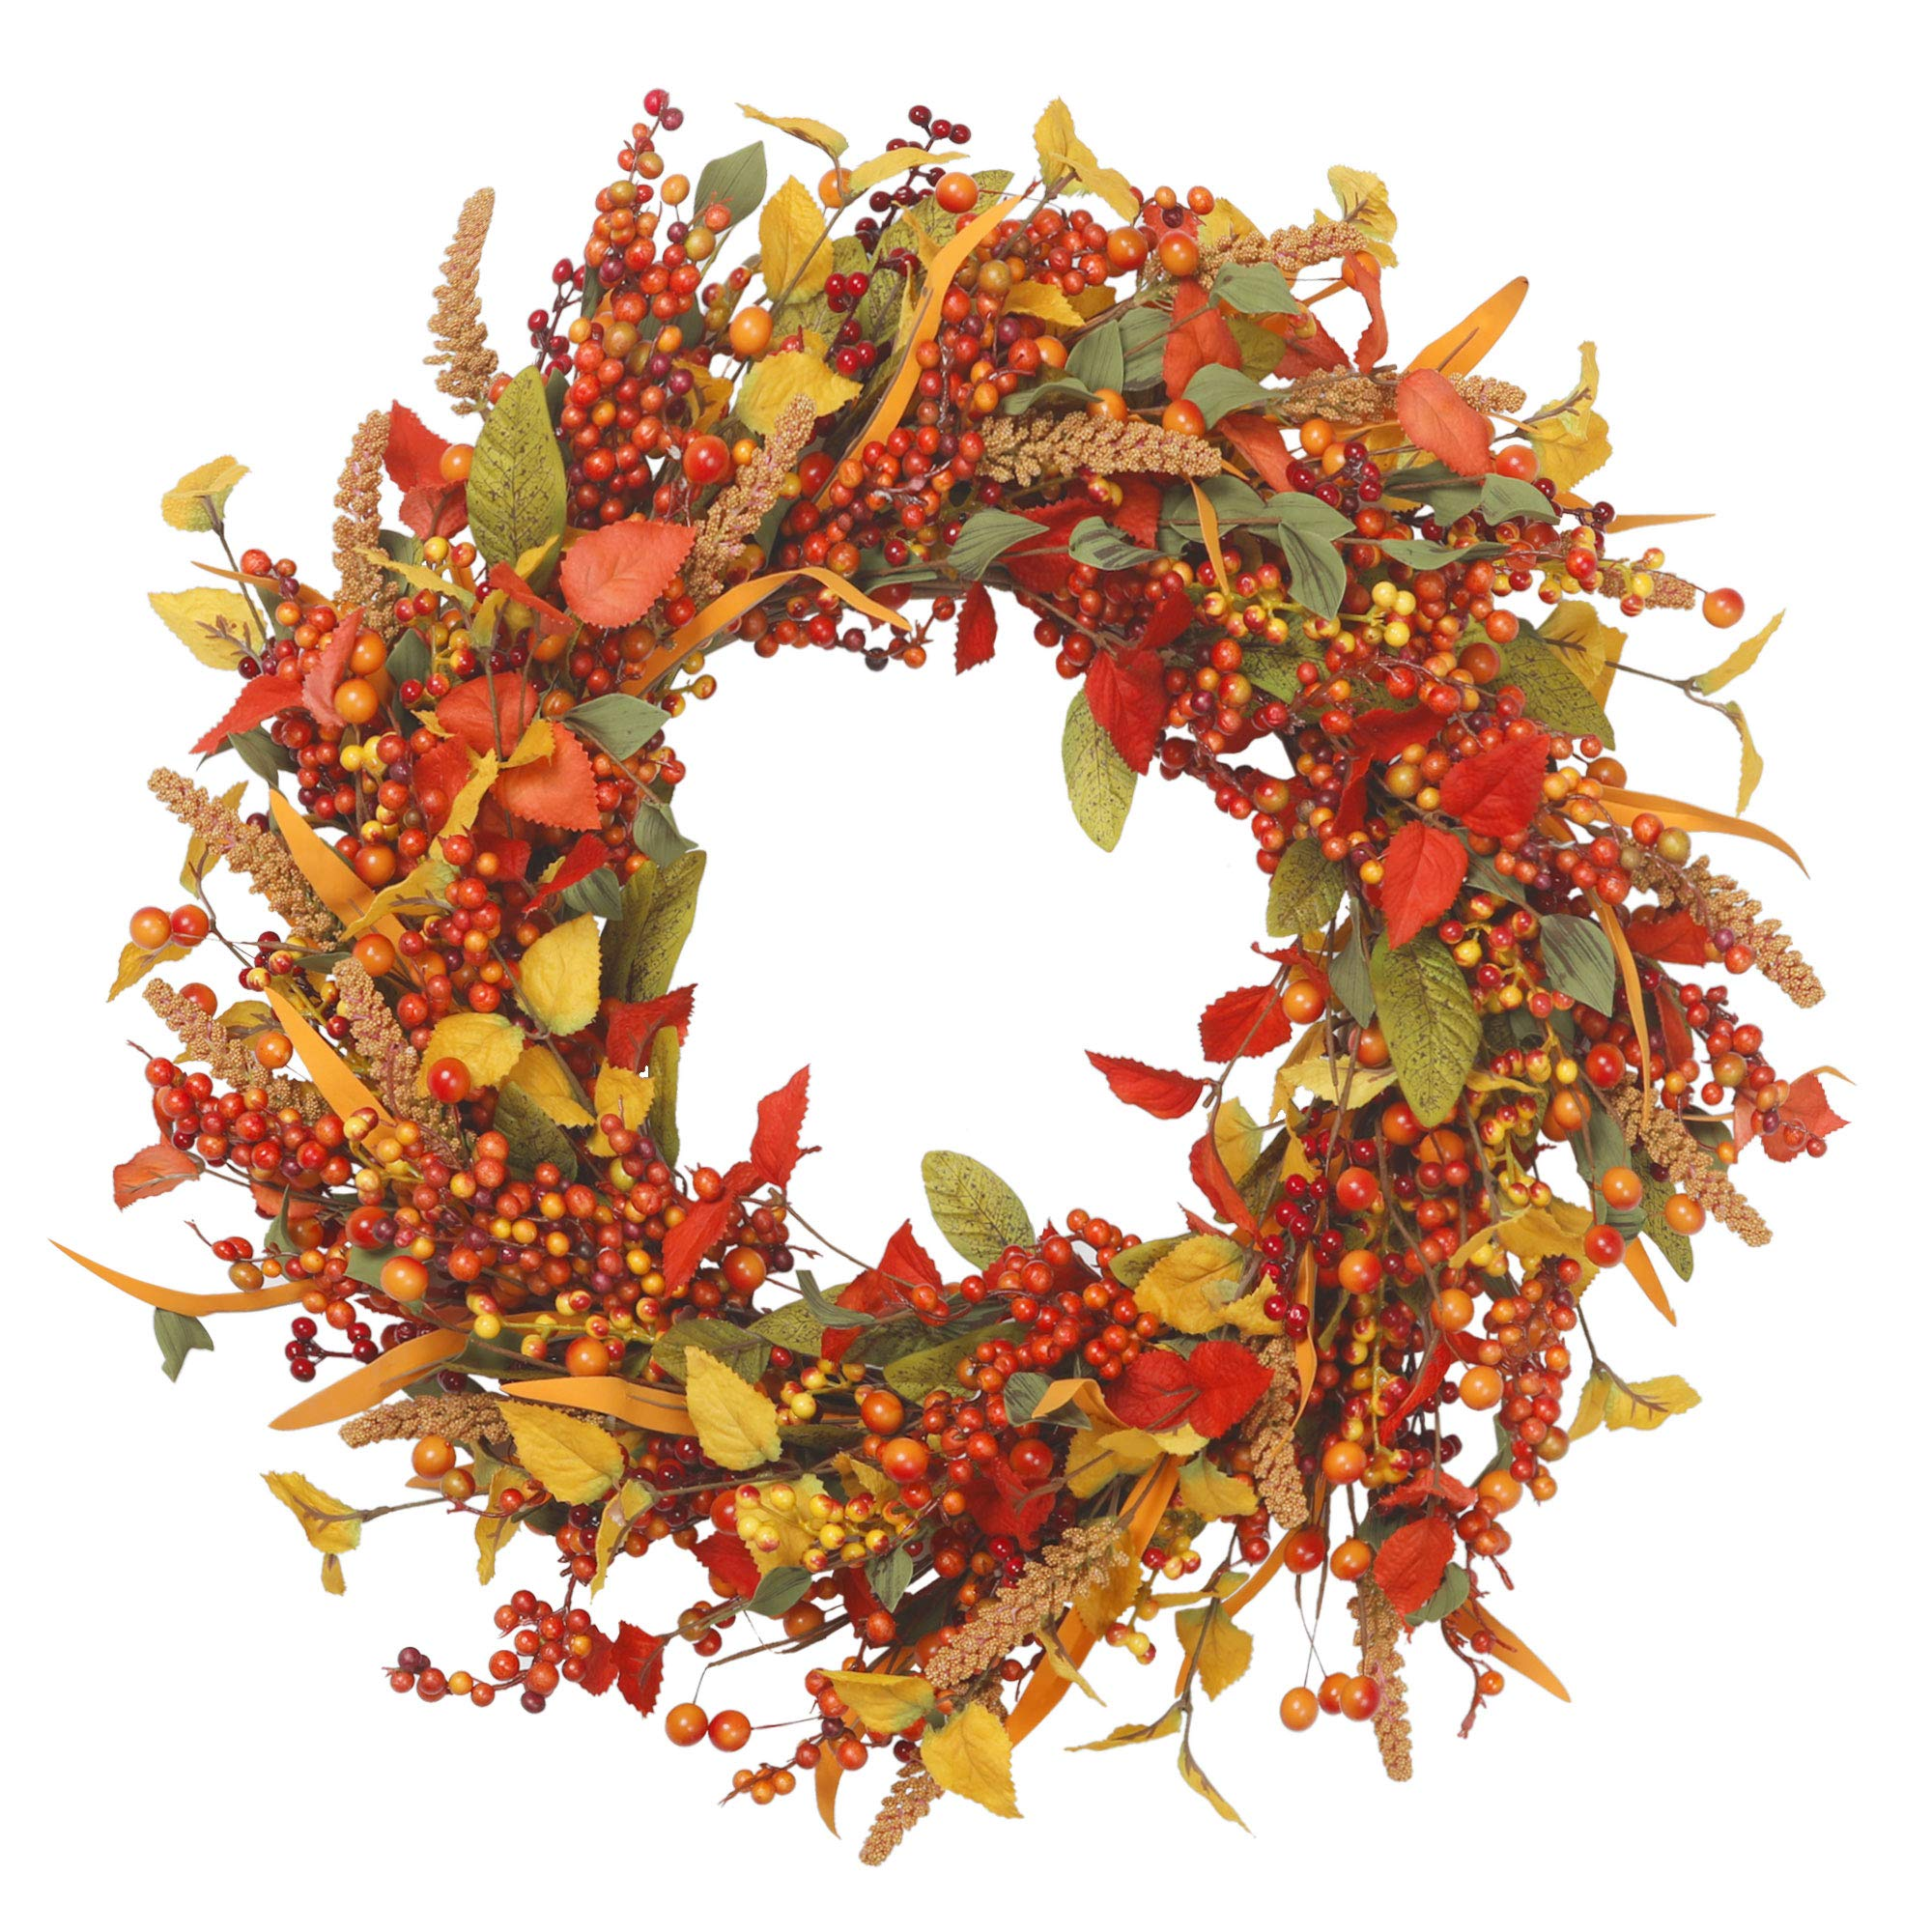 VGIA 22 inch Artificial Fall Wreath Door Wreath Autumn Wreath Berry Wreath Fall Decorations by VGIA